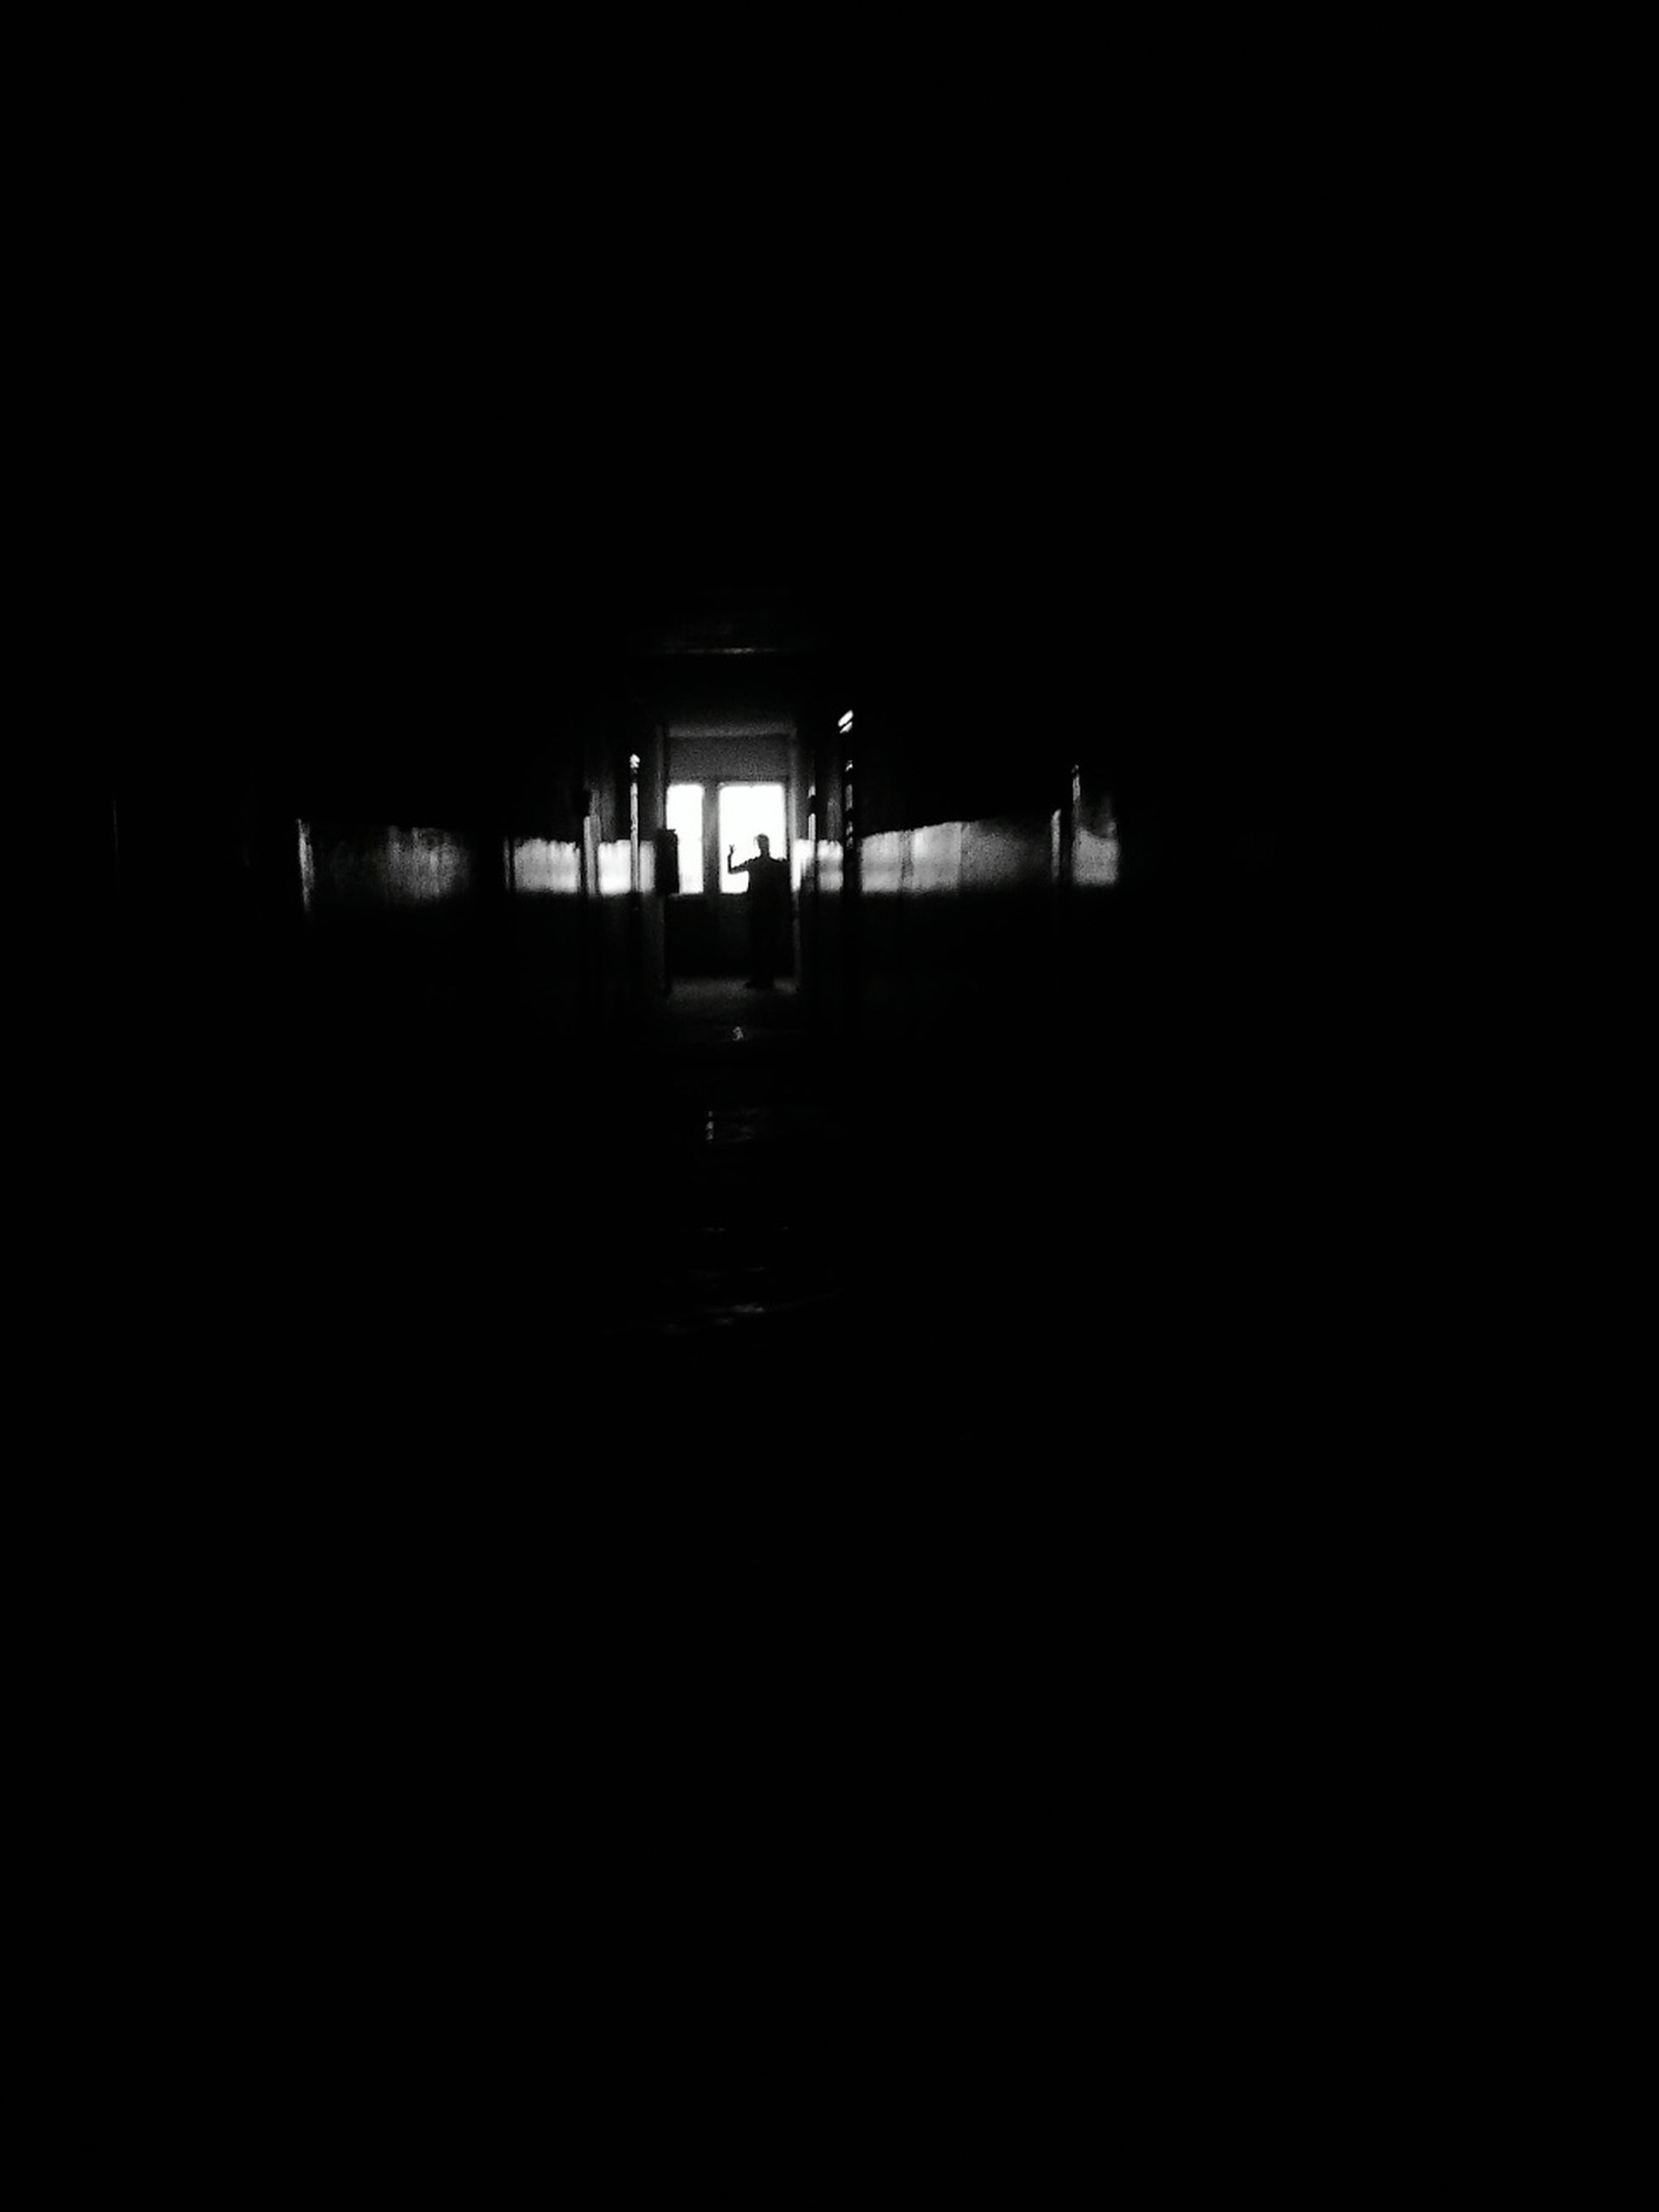 night, dark, illuminated, copy space, indoors, silhouette, built structure, architecture, empty, the way forward, lighting equipment, darkness, light - natural phenomenon, transportation, unrecognizable person, absence, light, tunnel